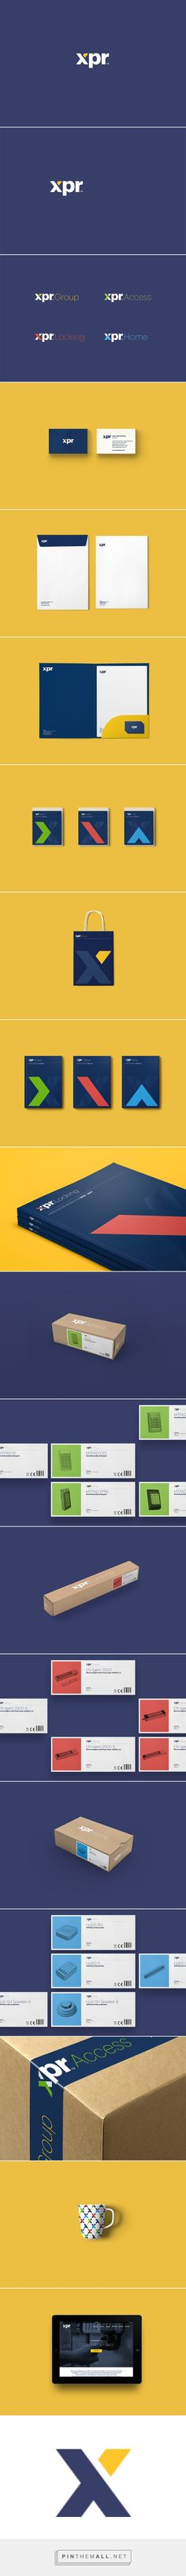 XPR. Corporate identity. on Behance - created via https://pinthemall.net